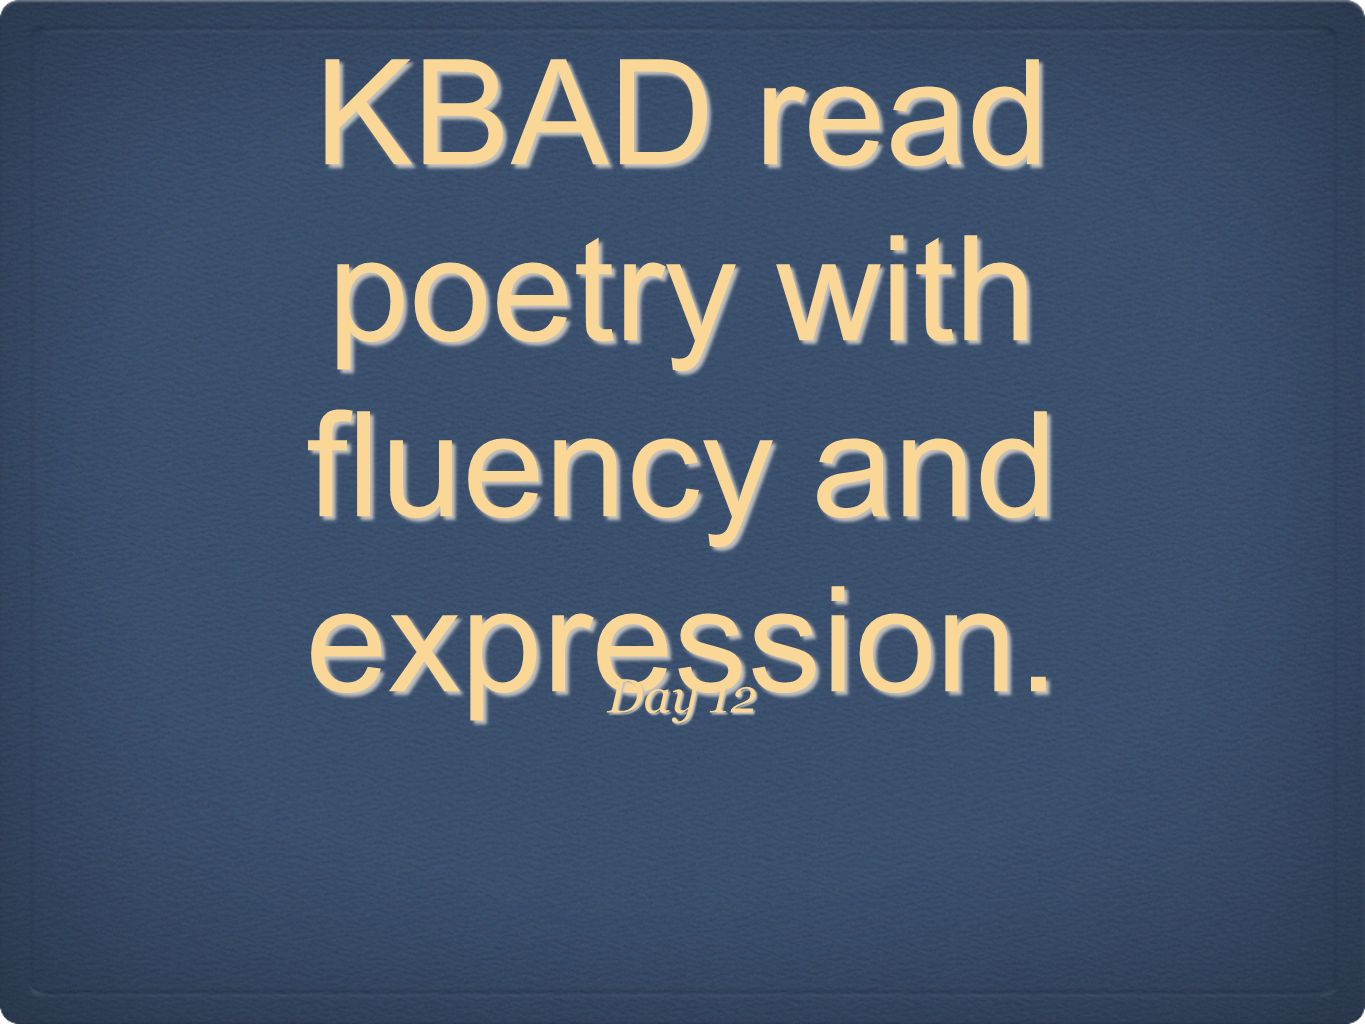 KBAD read poetry with fluency and expression.